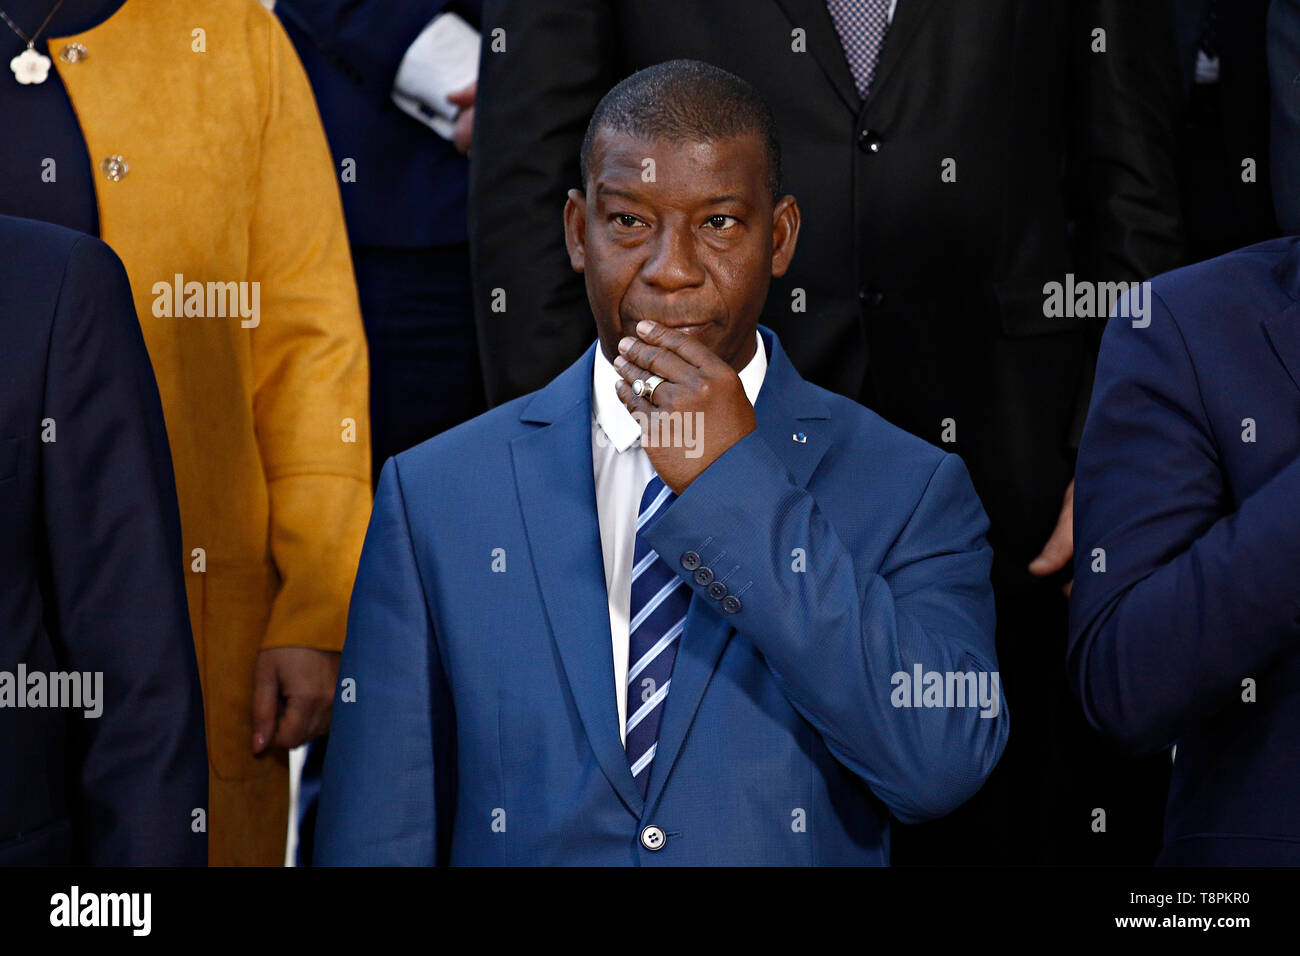 Brussels, Belgium. 14th May 2019. Defence Minister of Mali, Ibrahima Dahirou DEMBELE attends in meeting of EU defense ministers and their counterparts of the G5 Sahel at the EU headquarters. Credit: ALEXANDROS MICHAILIDIS/Alamy Live News - Stock Image